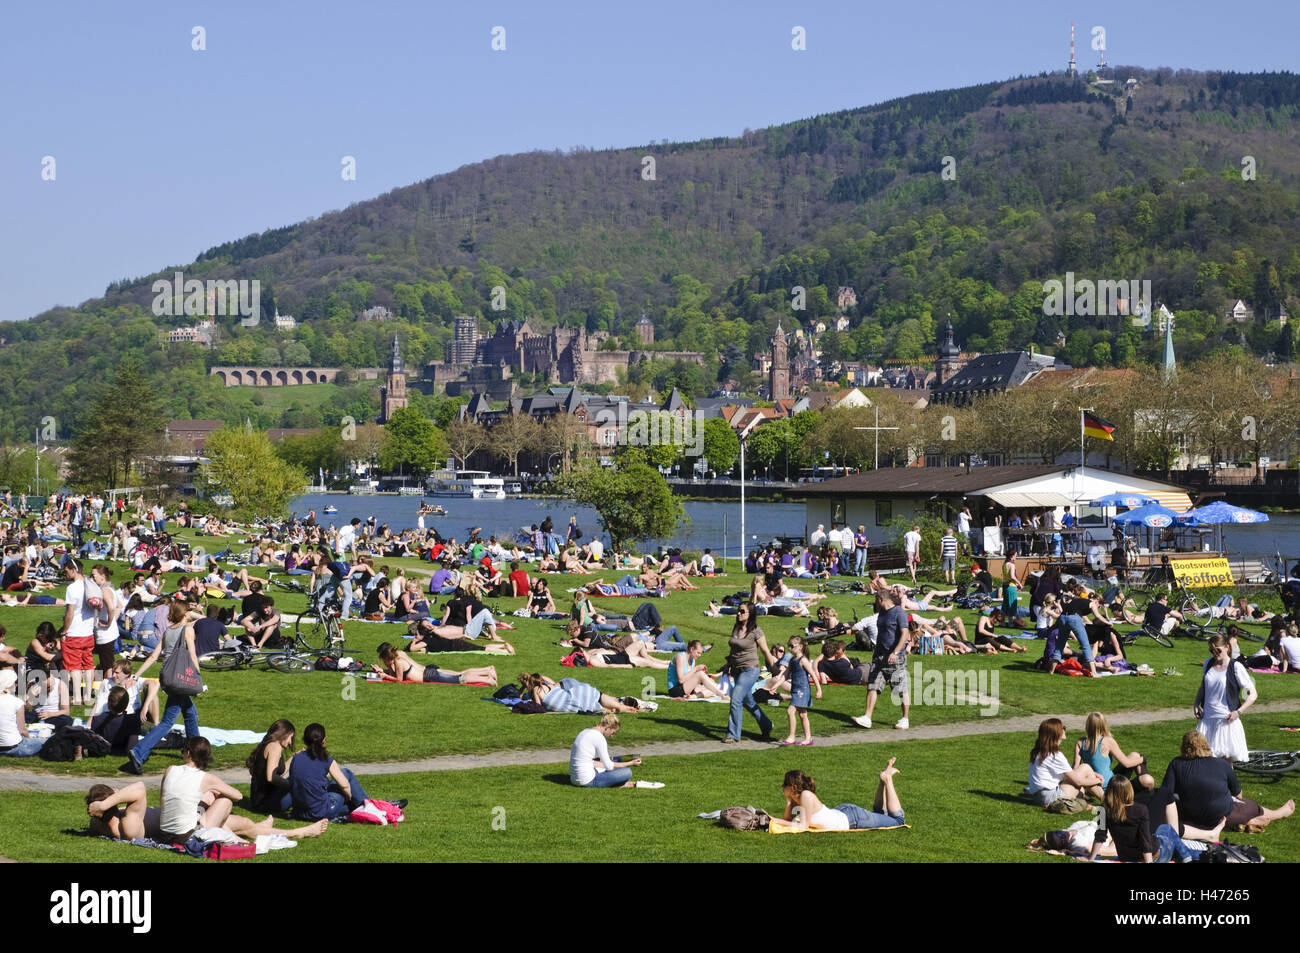 The Neckar, meadows with people, towpath, old town, Heidelberg, Baden-Württemberg, Germany, - Stock Image